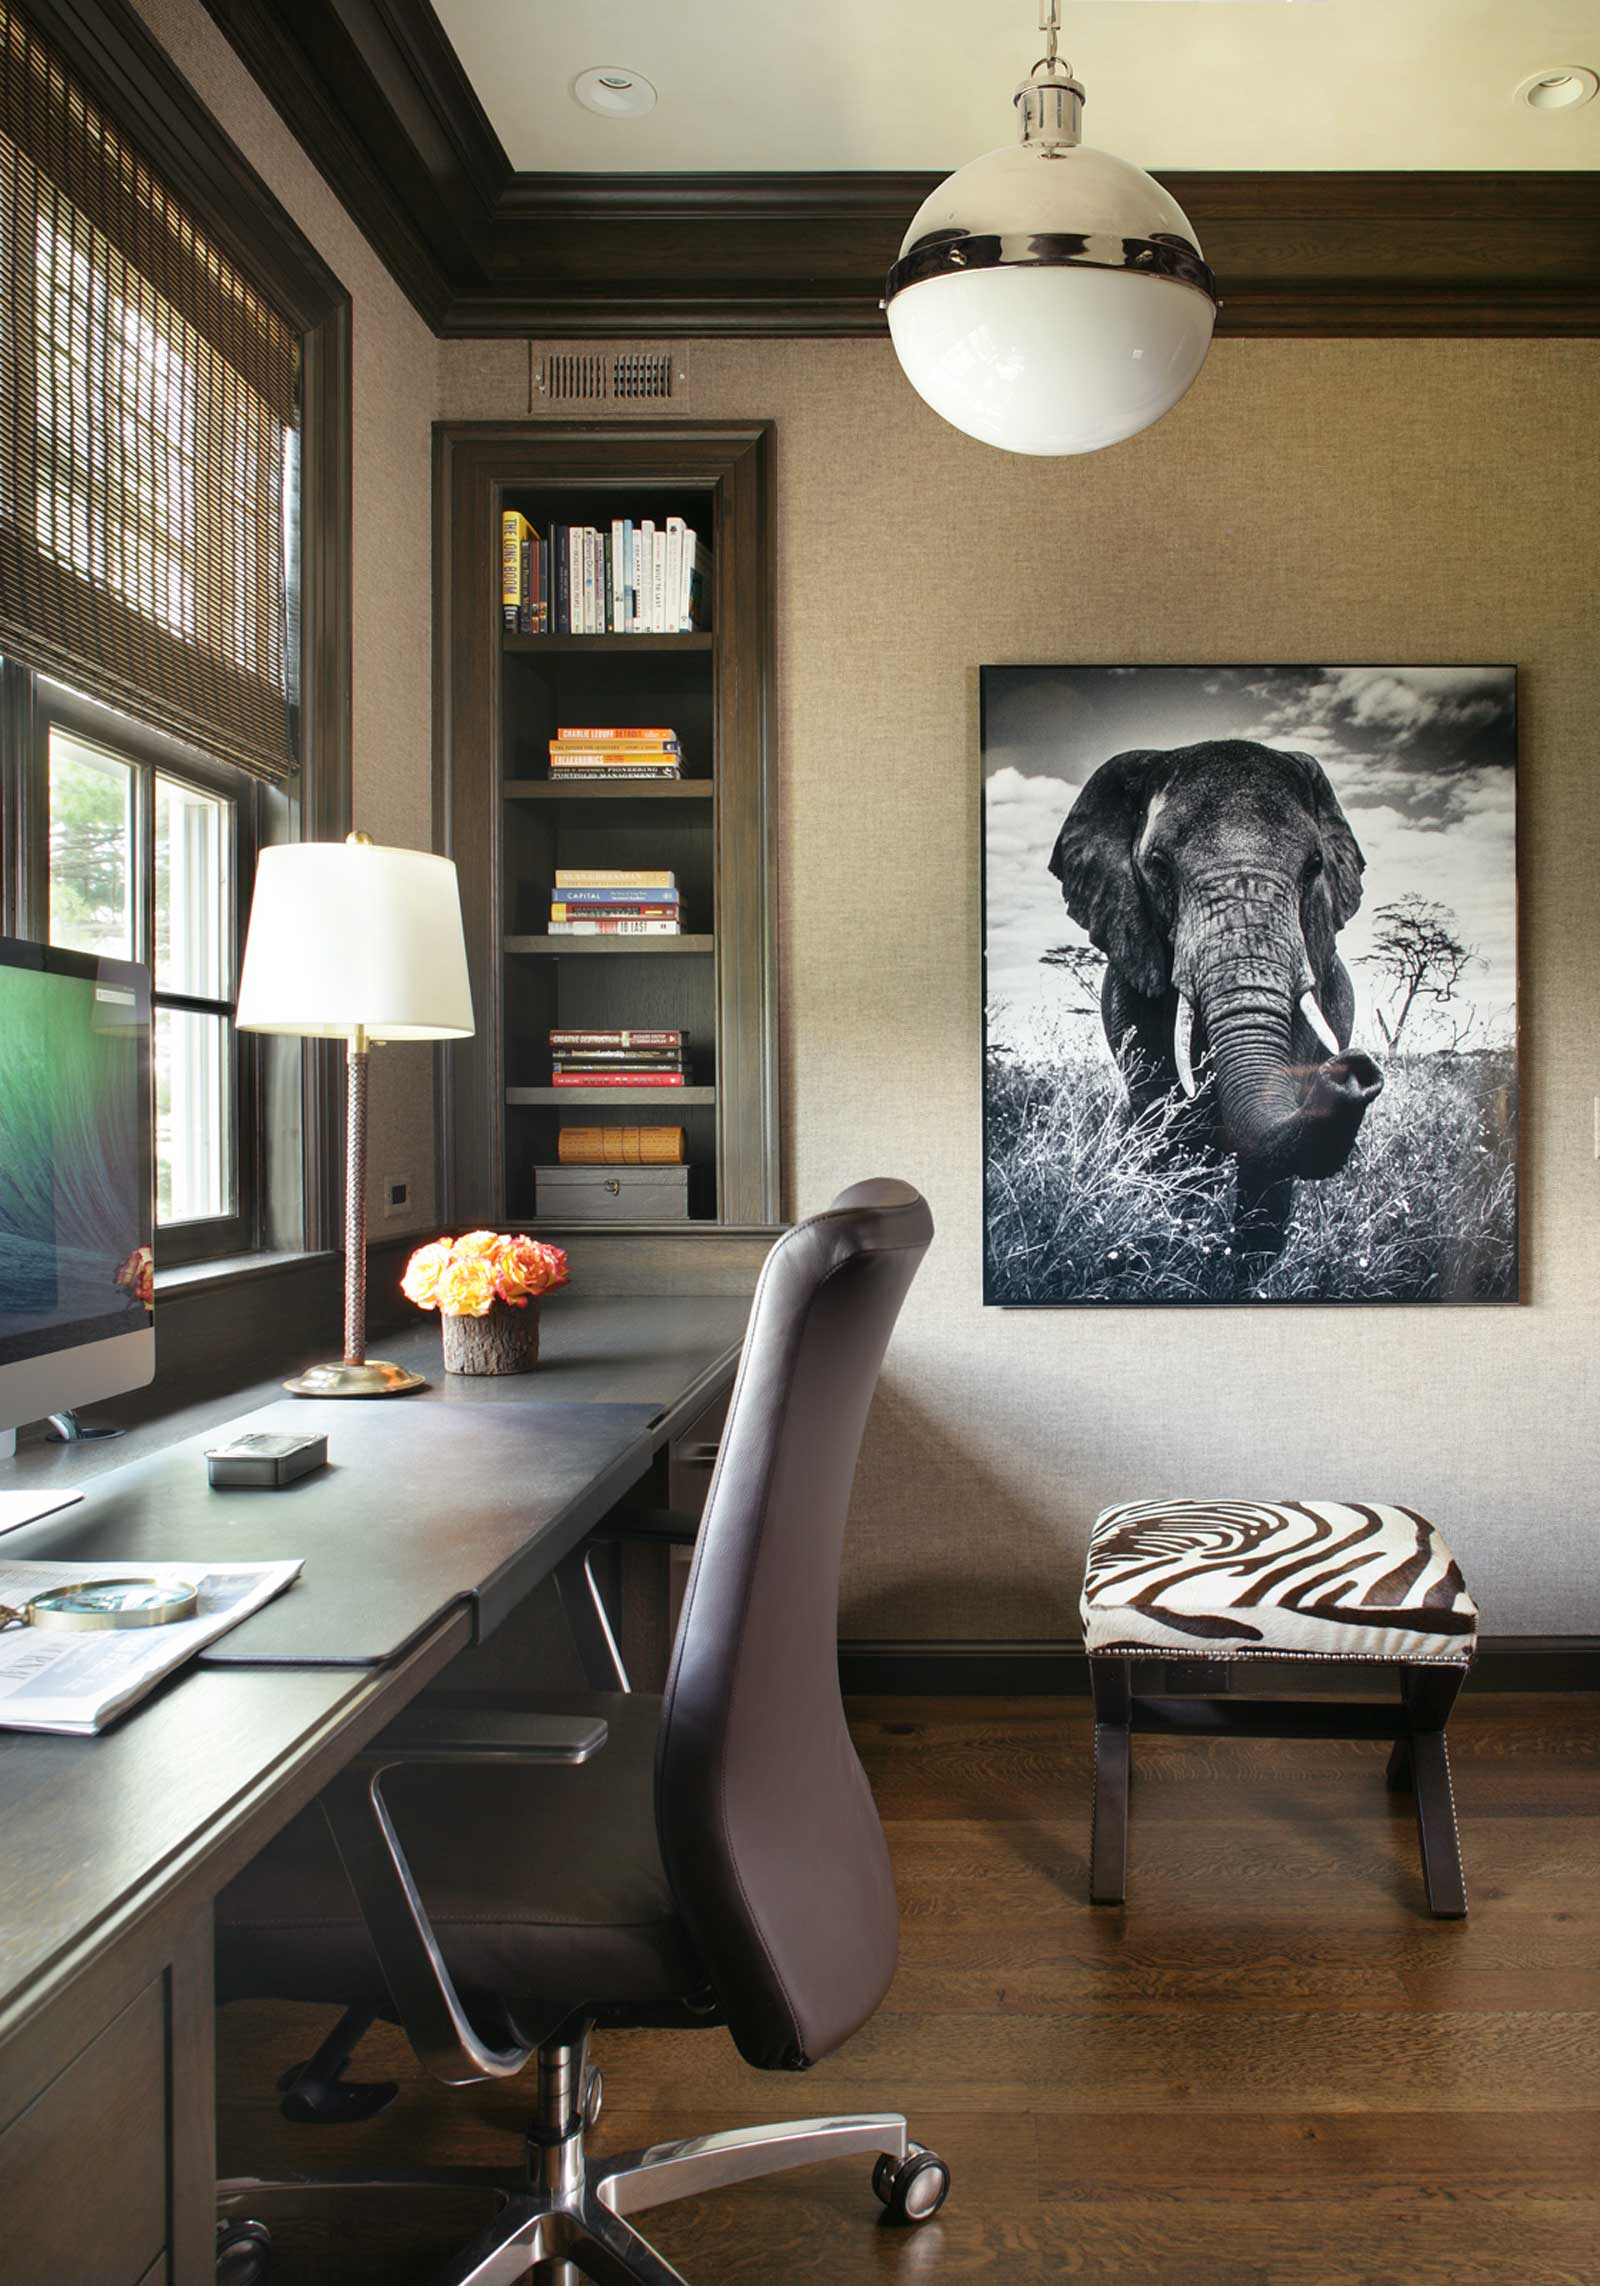 FEATURED HOUZZ EDITORIAL IDEABOOK